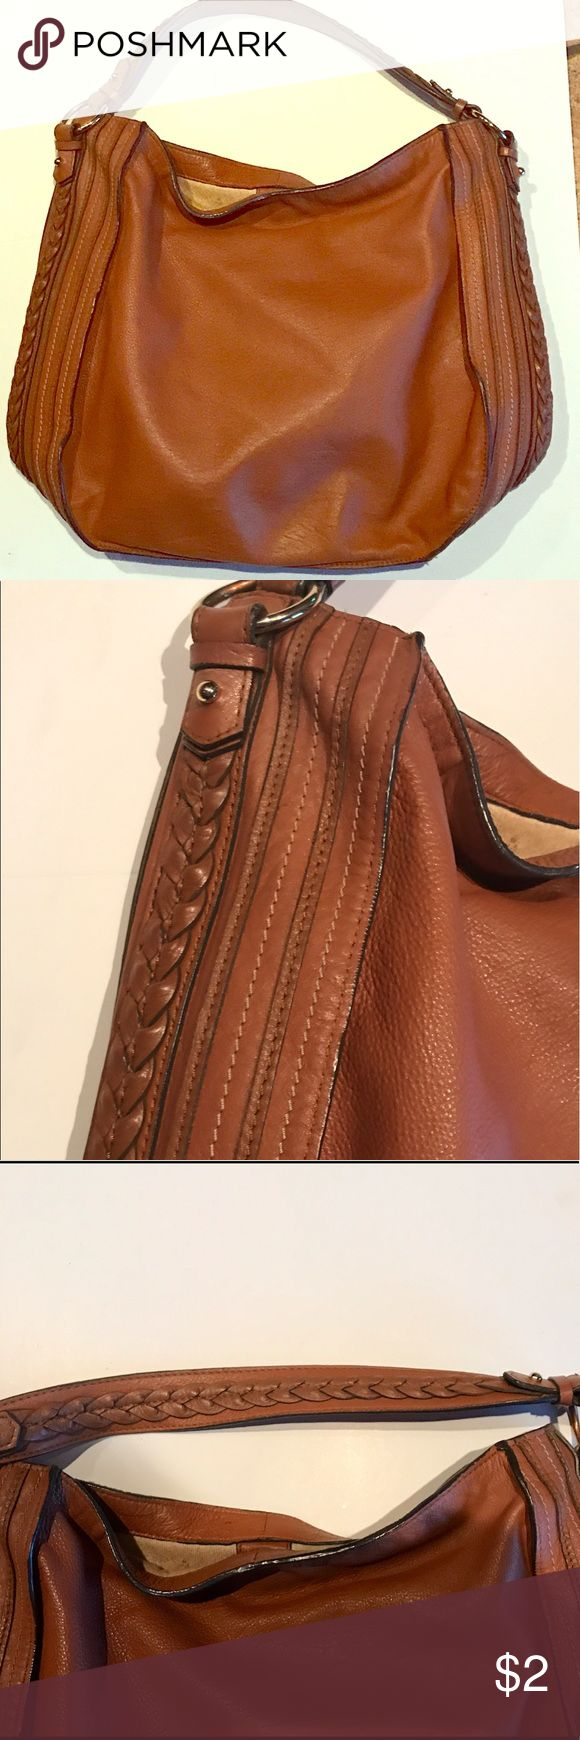 Gorgeous Zara Shoulder Bag With Much Detail ! Gorgeous Zara Woman Camel Shoulder Bag . Braided Handles Gold Detail Snap Closure One Inside Pocket . Inside has Wear . Outside is in Perfect Condition. Excellent Quality !! The bag is beautiful !! Great Buy !! Zara Bags Shoulder Bags